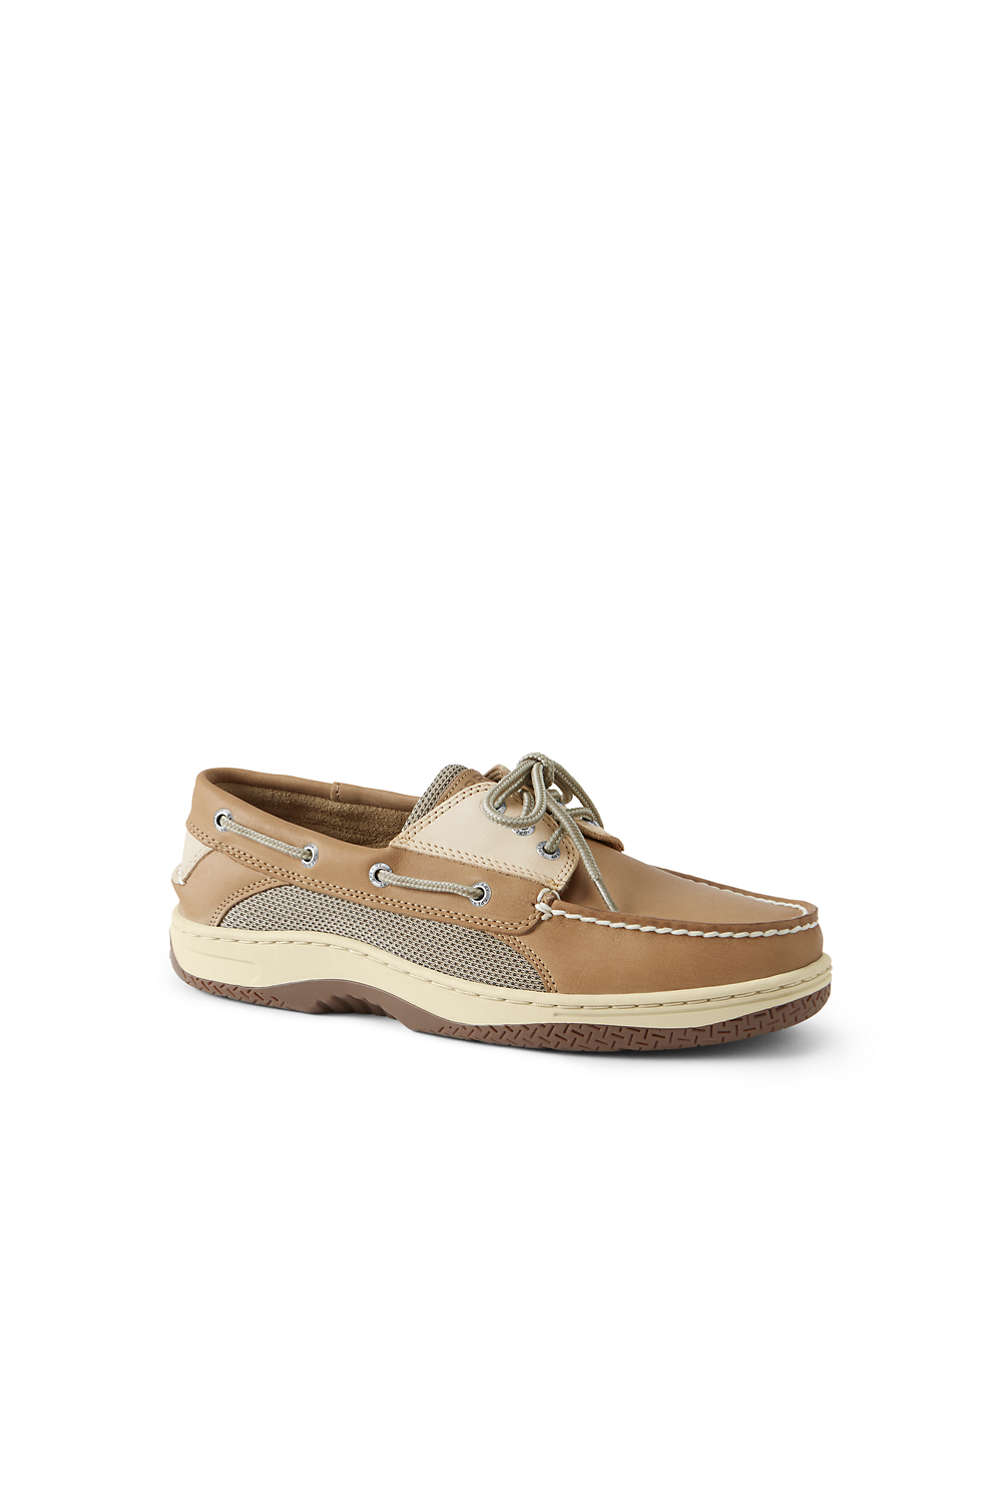 e9ac3e6c1a9d4 Men's Sperry Billfish 3 Eye Boat Shoes from Lands' End